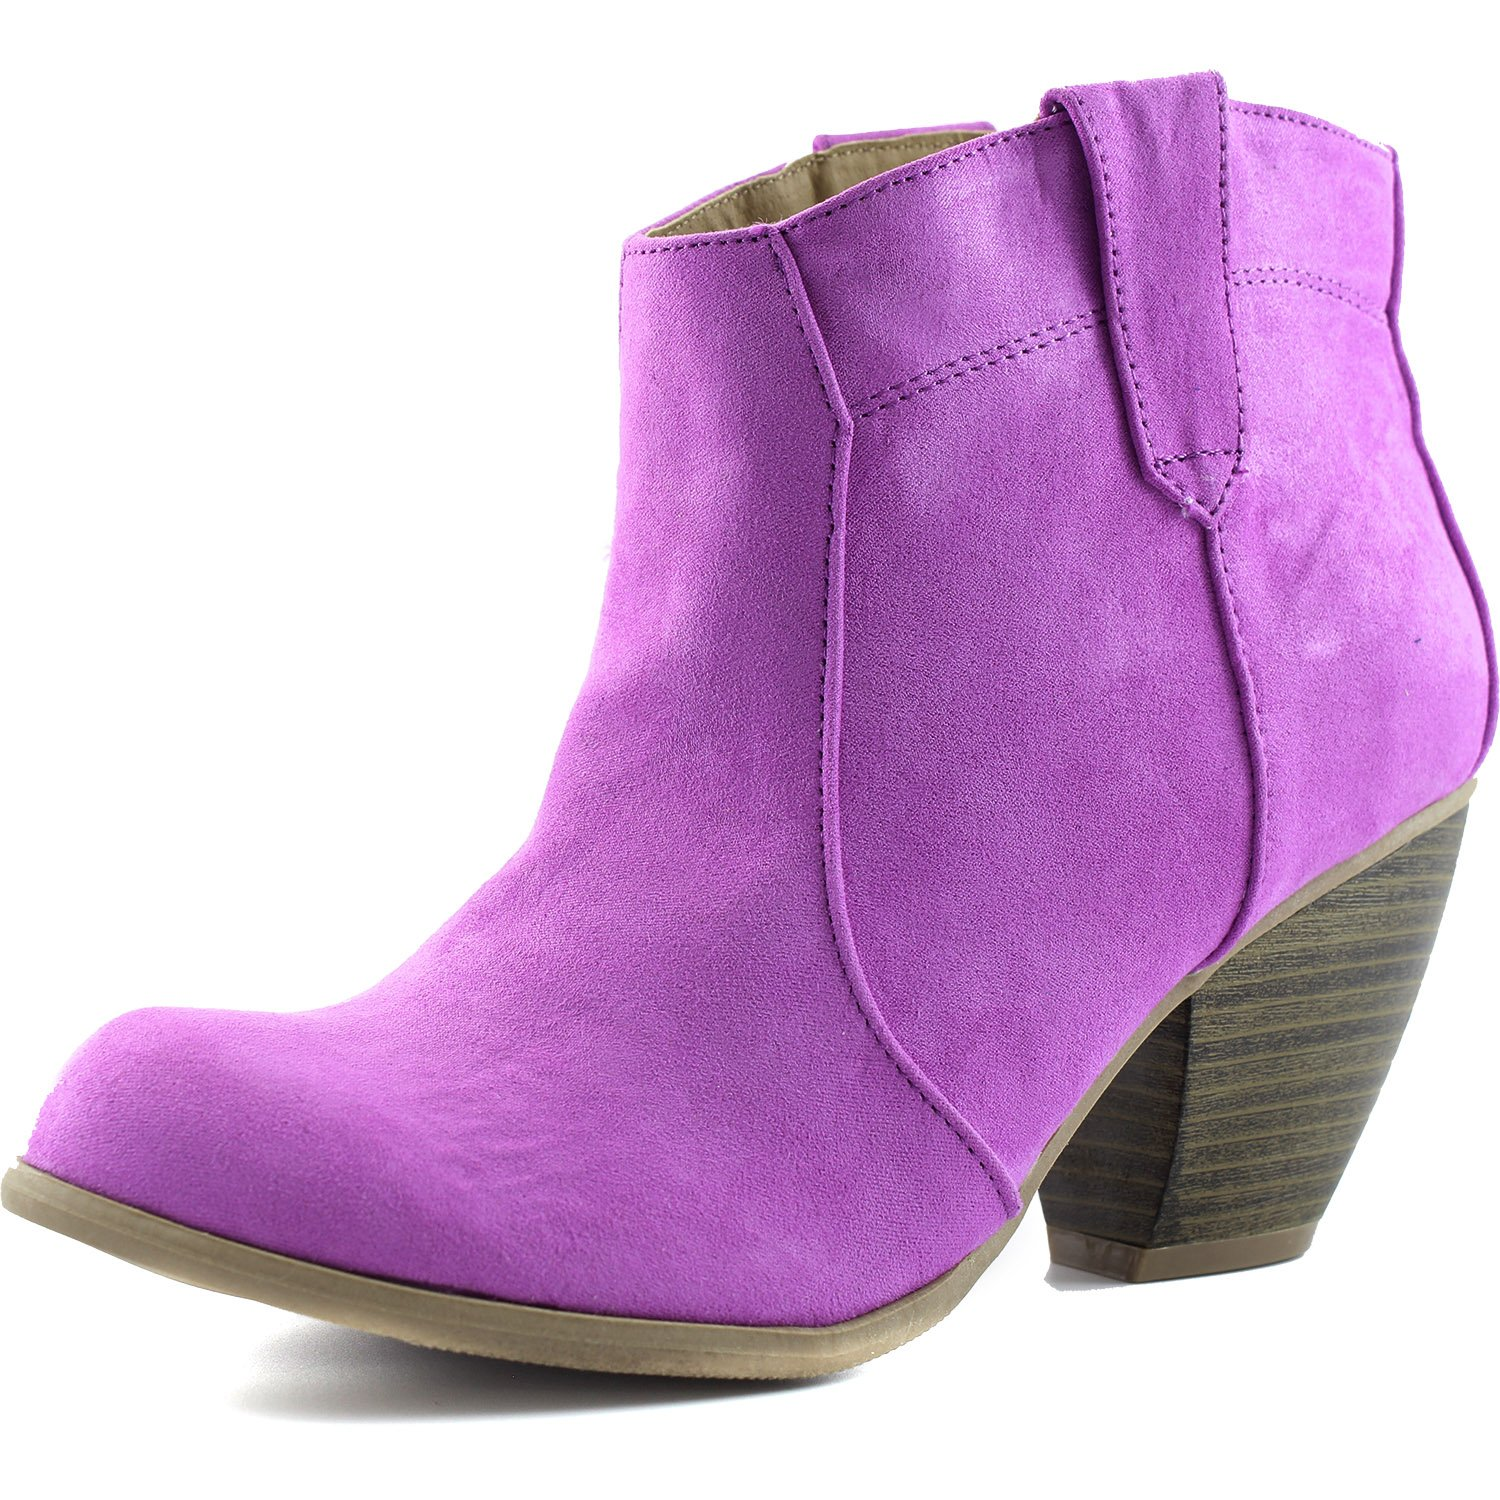 Qupid Womens Priority-53 Western Cowboy Ankle Bootie Fashion Round Toe Boots